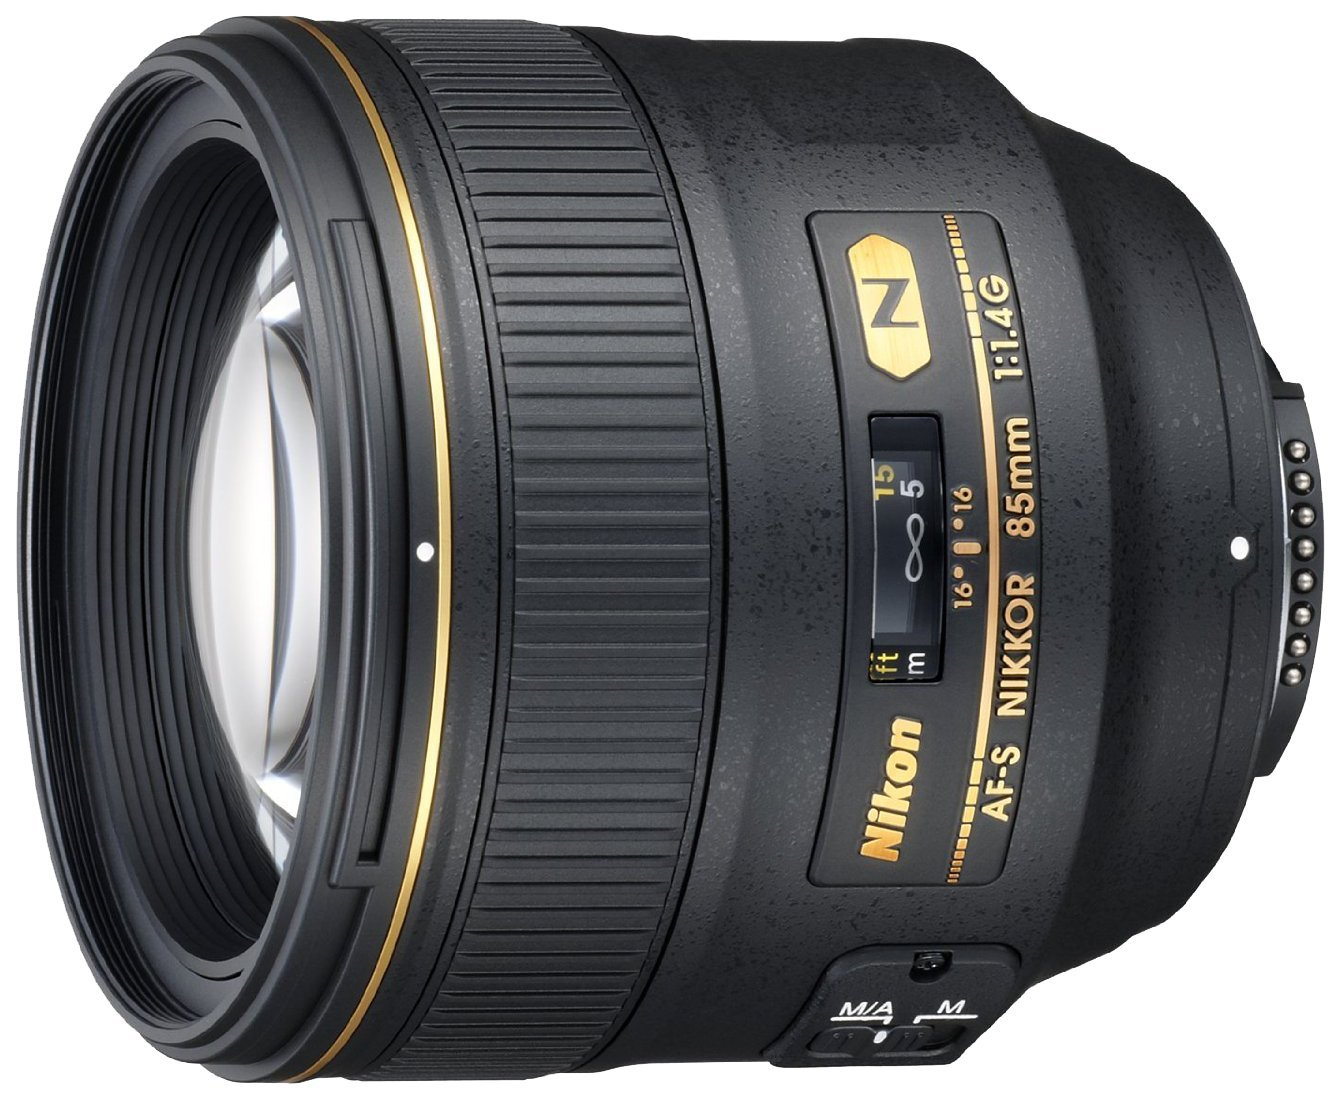 NIKKOR 85mm f/1.4G Lens with Auto Focus for Nikon DSLR Cameras